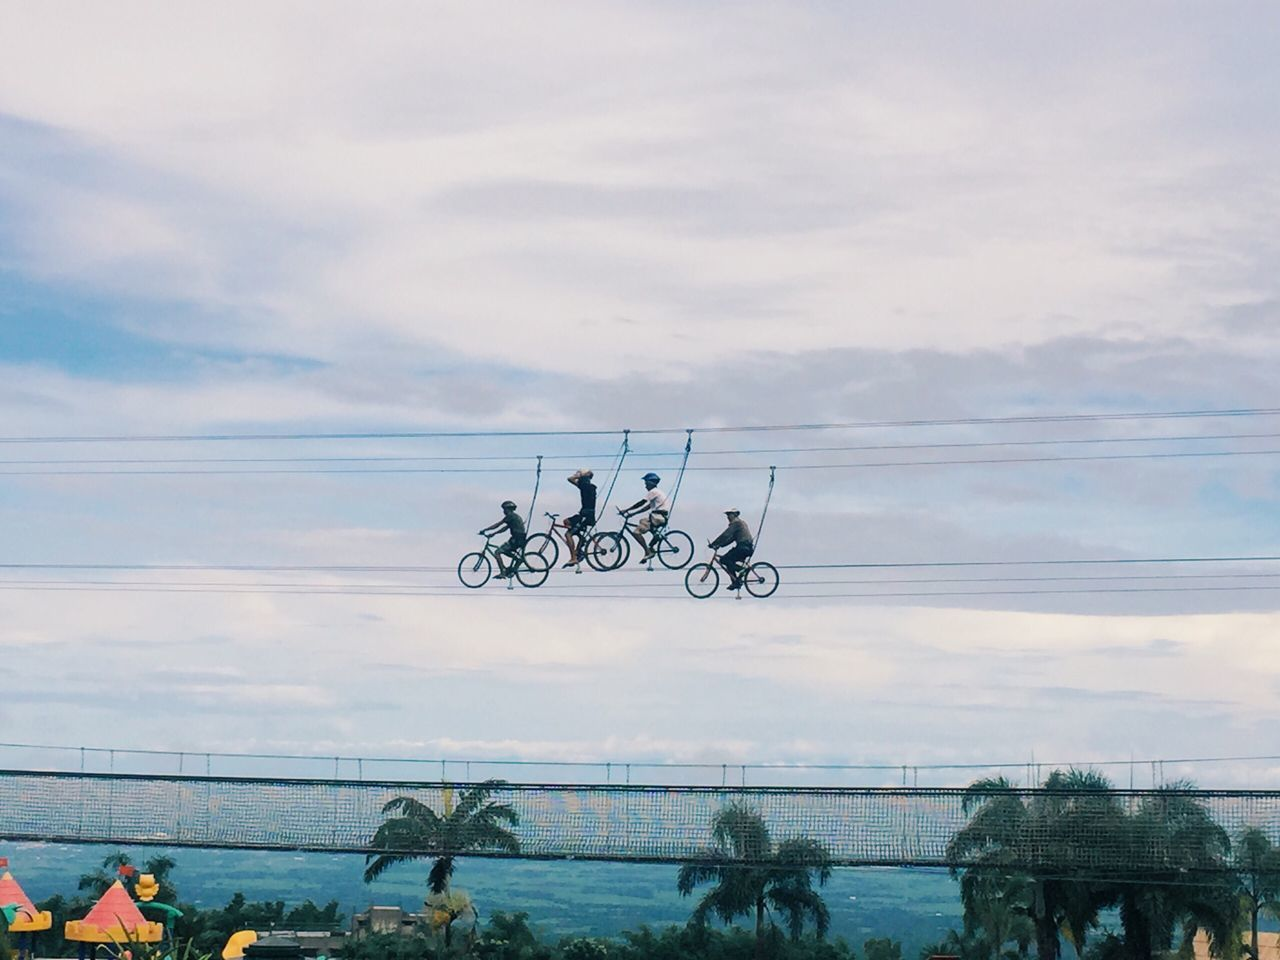 Low Angle View Of People Zip Line Cycling Against Sky